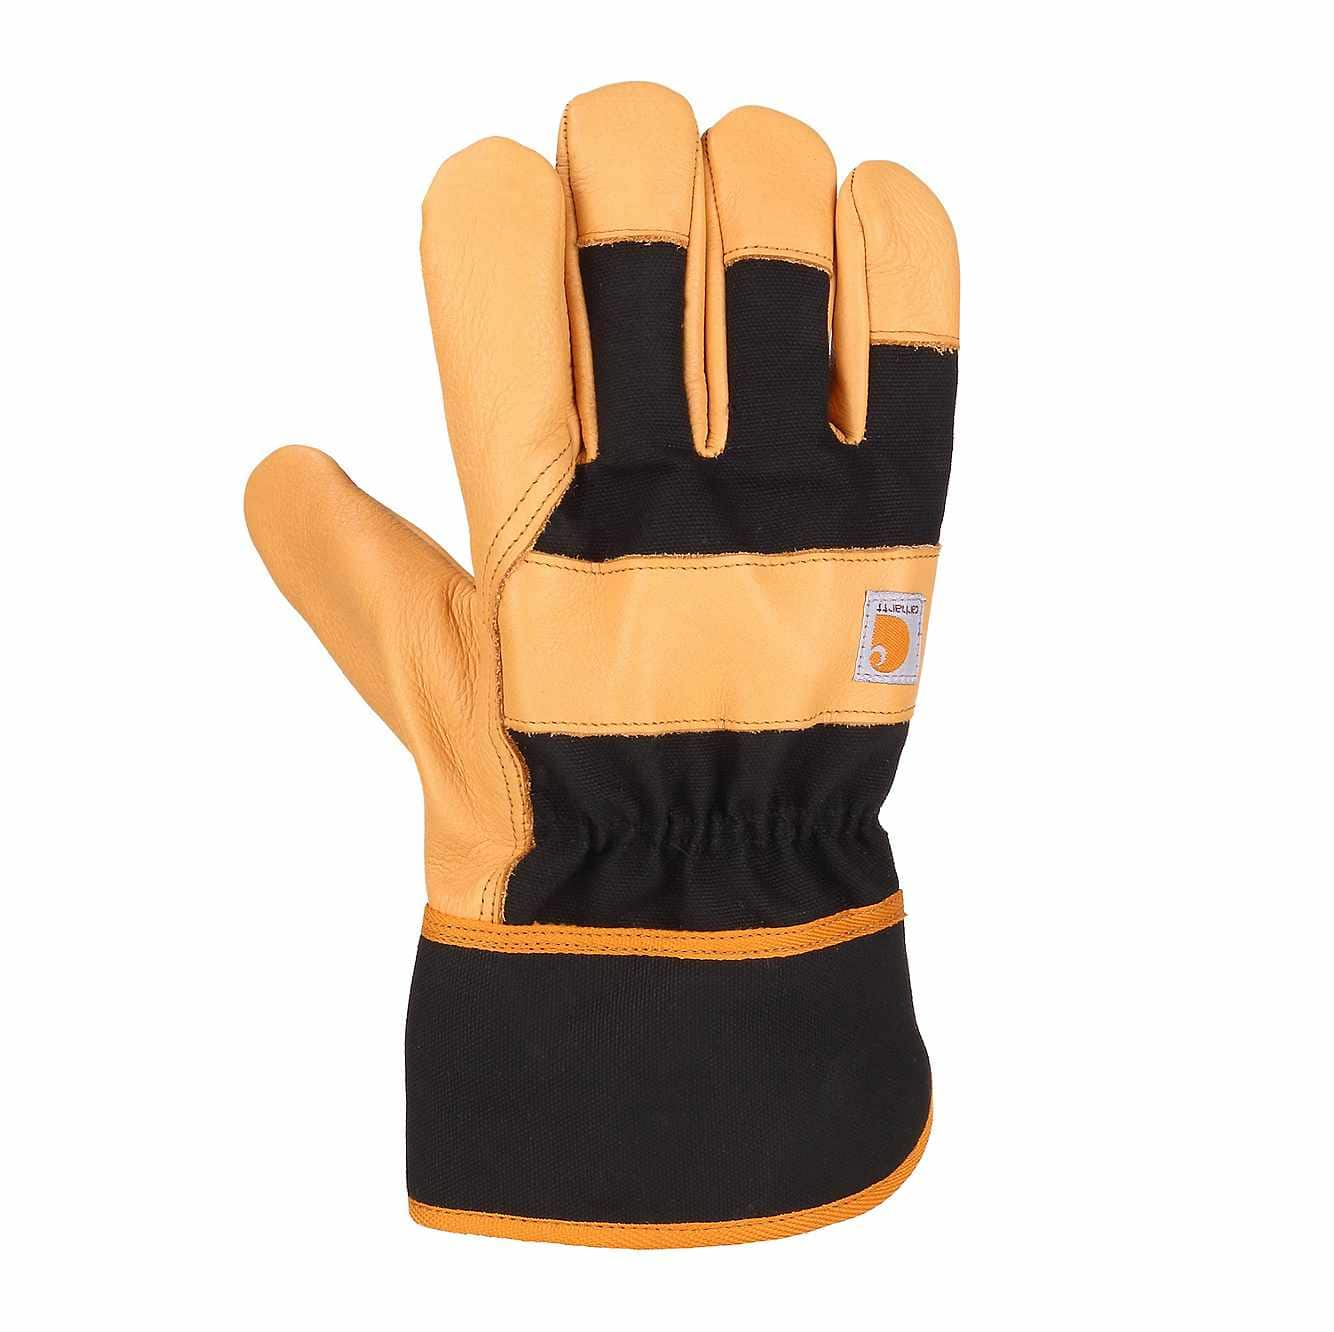 Picture of Insulated Safety Cuff Work Glove in Black/Tan